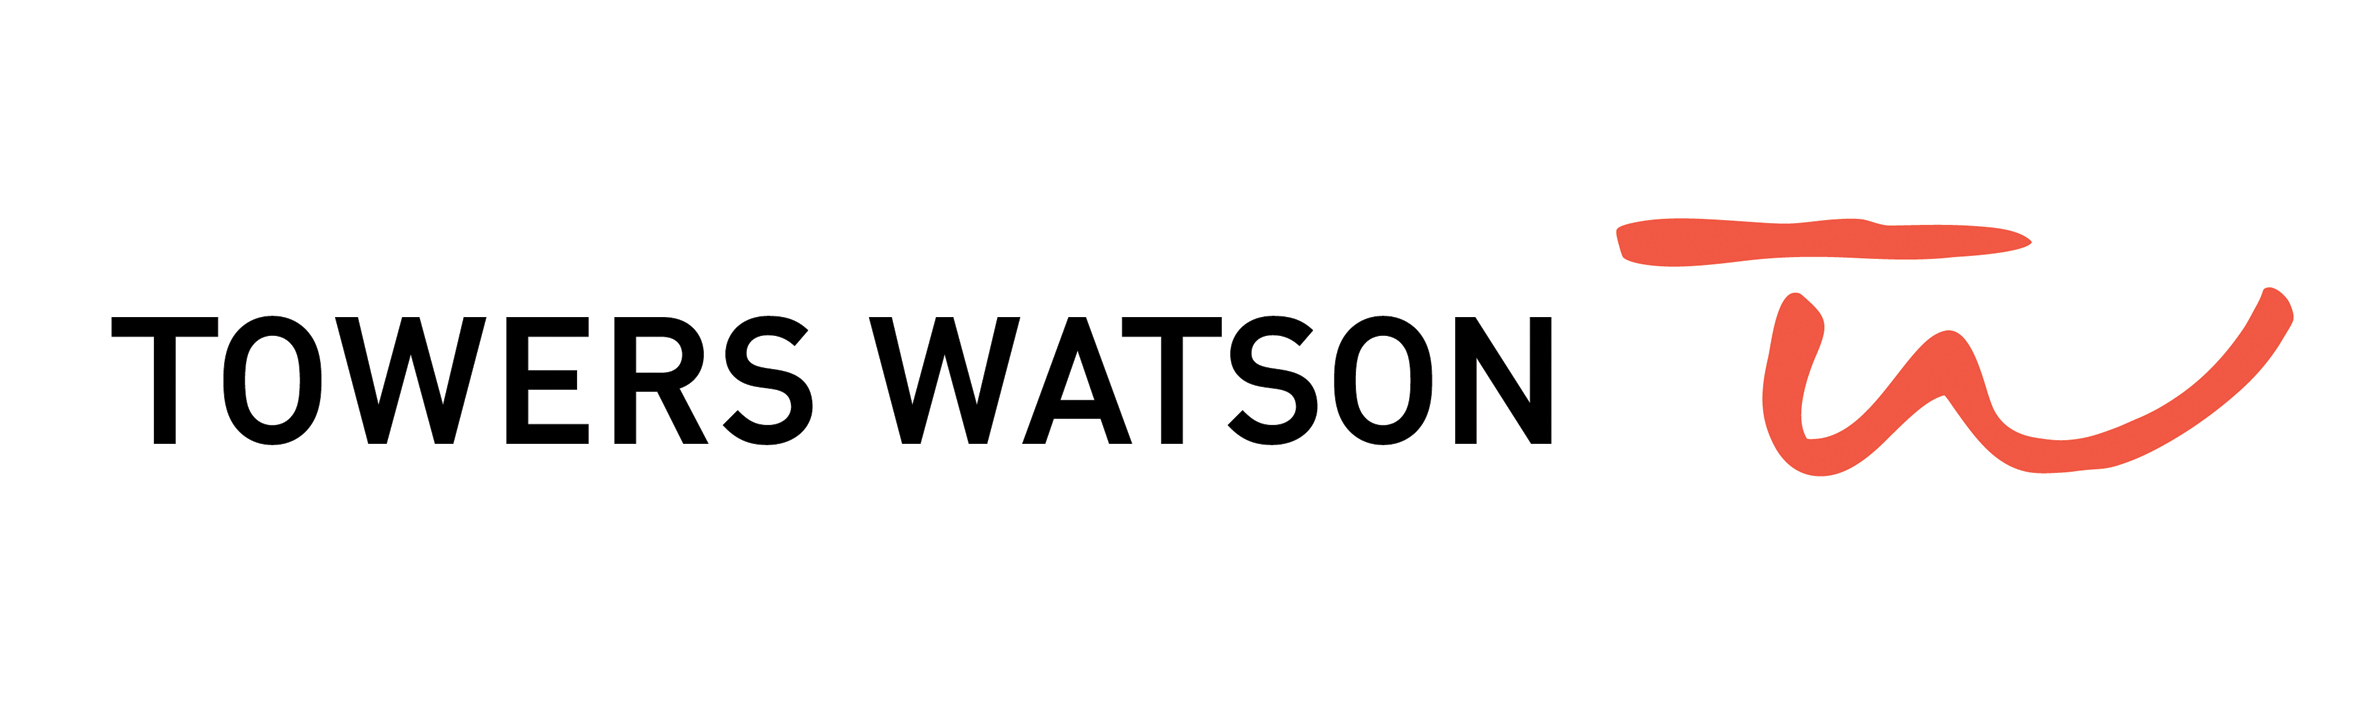 Towers Watson Shareholders Are Getting A Raw Deal